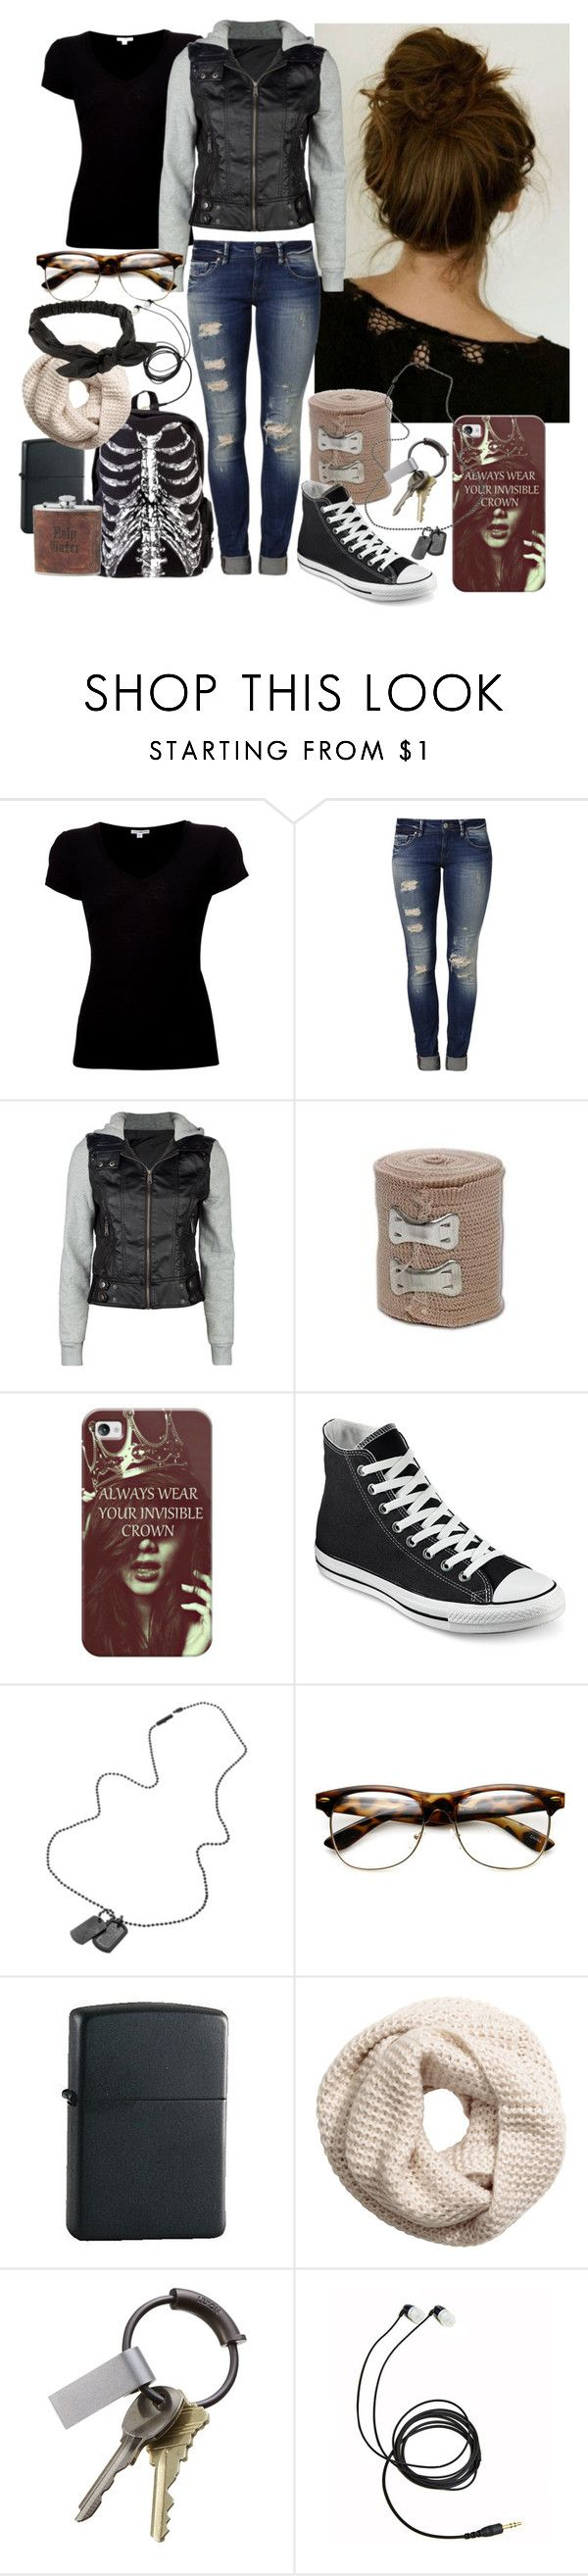 """School Look"" by smash22 ❤ liked on Polyvore featuring James Perse, Mavi, Full Tilt, Casetify, Converse, Diesel, Zippo, H&M, CB2 and NLY Accessories"